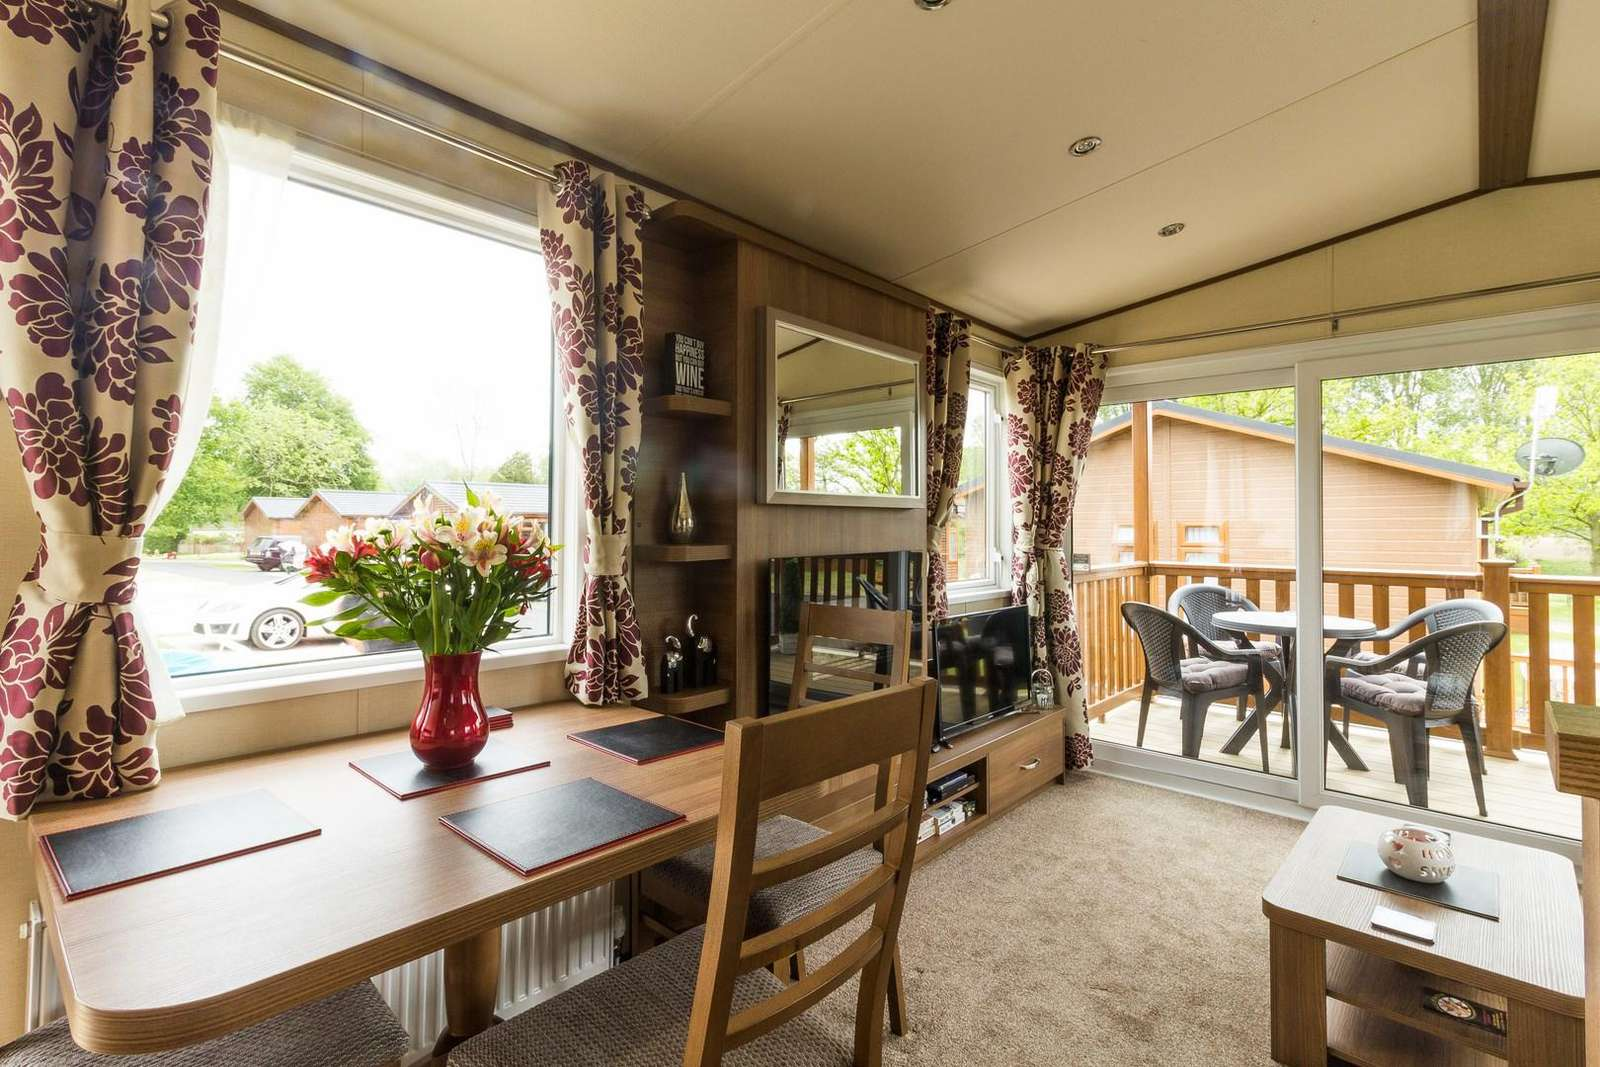 Luxury lodge situated in Norfolk, near Norwich for days out